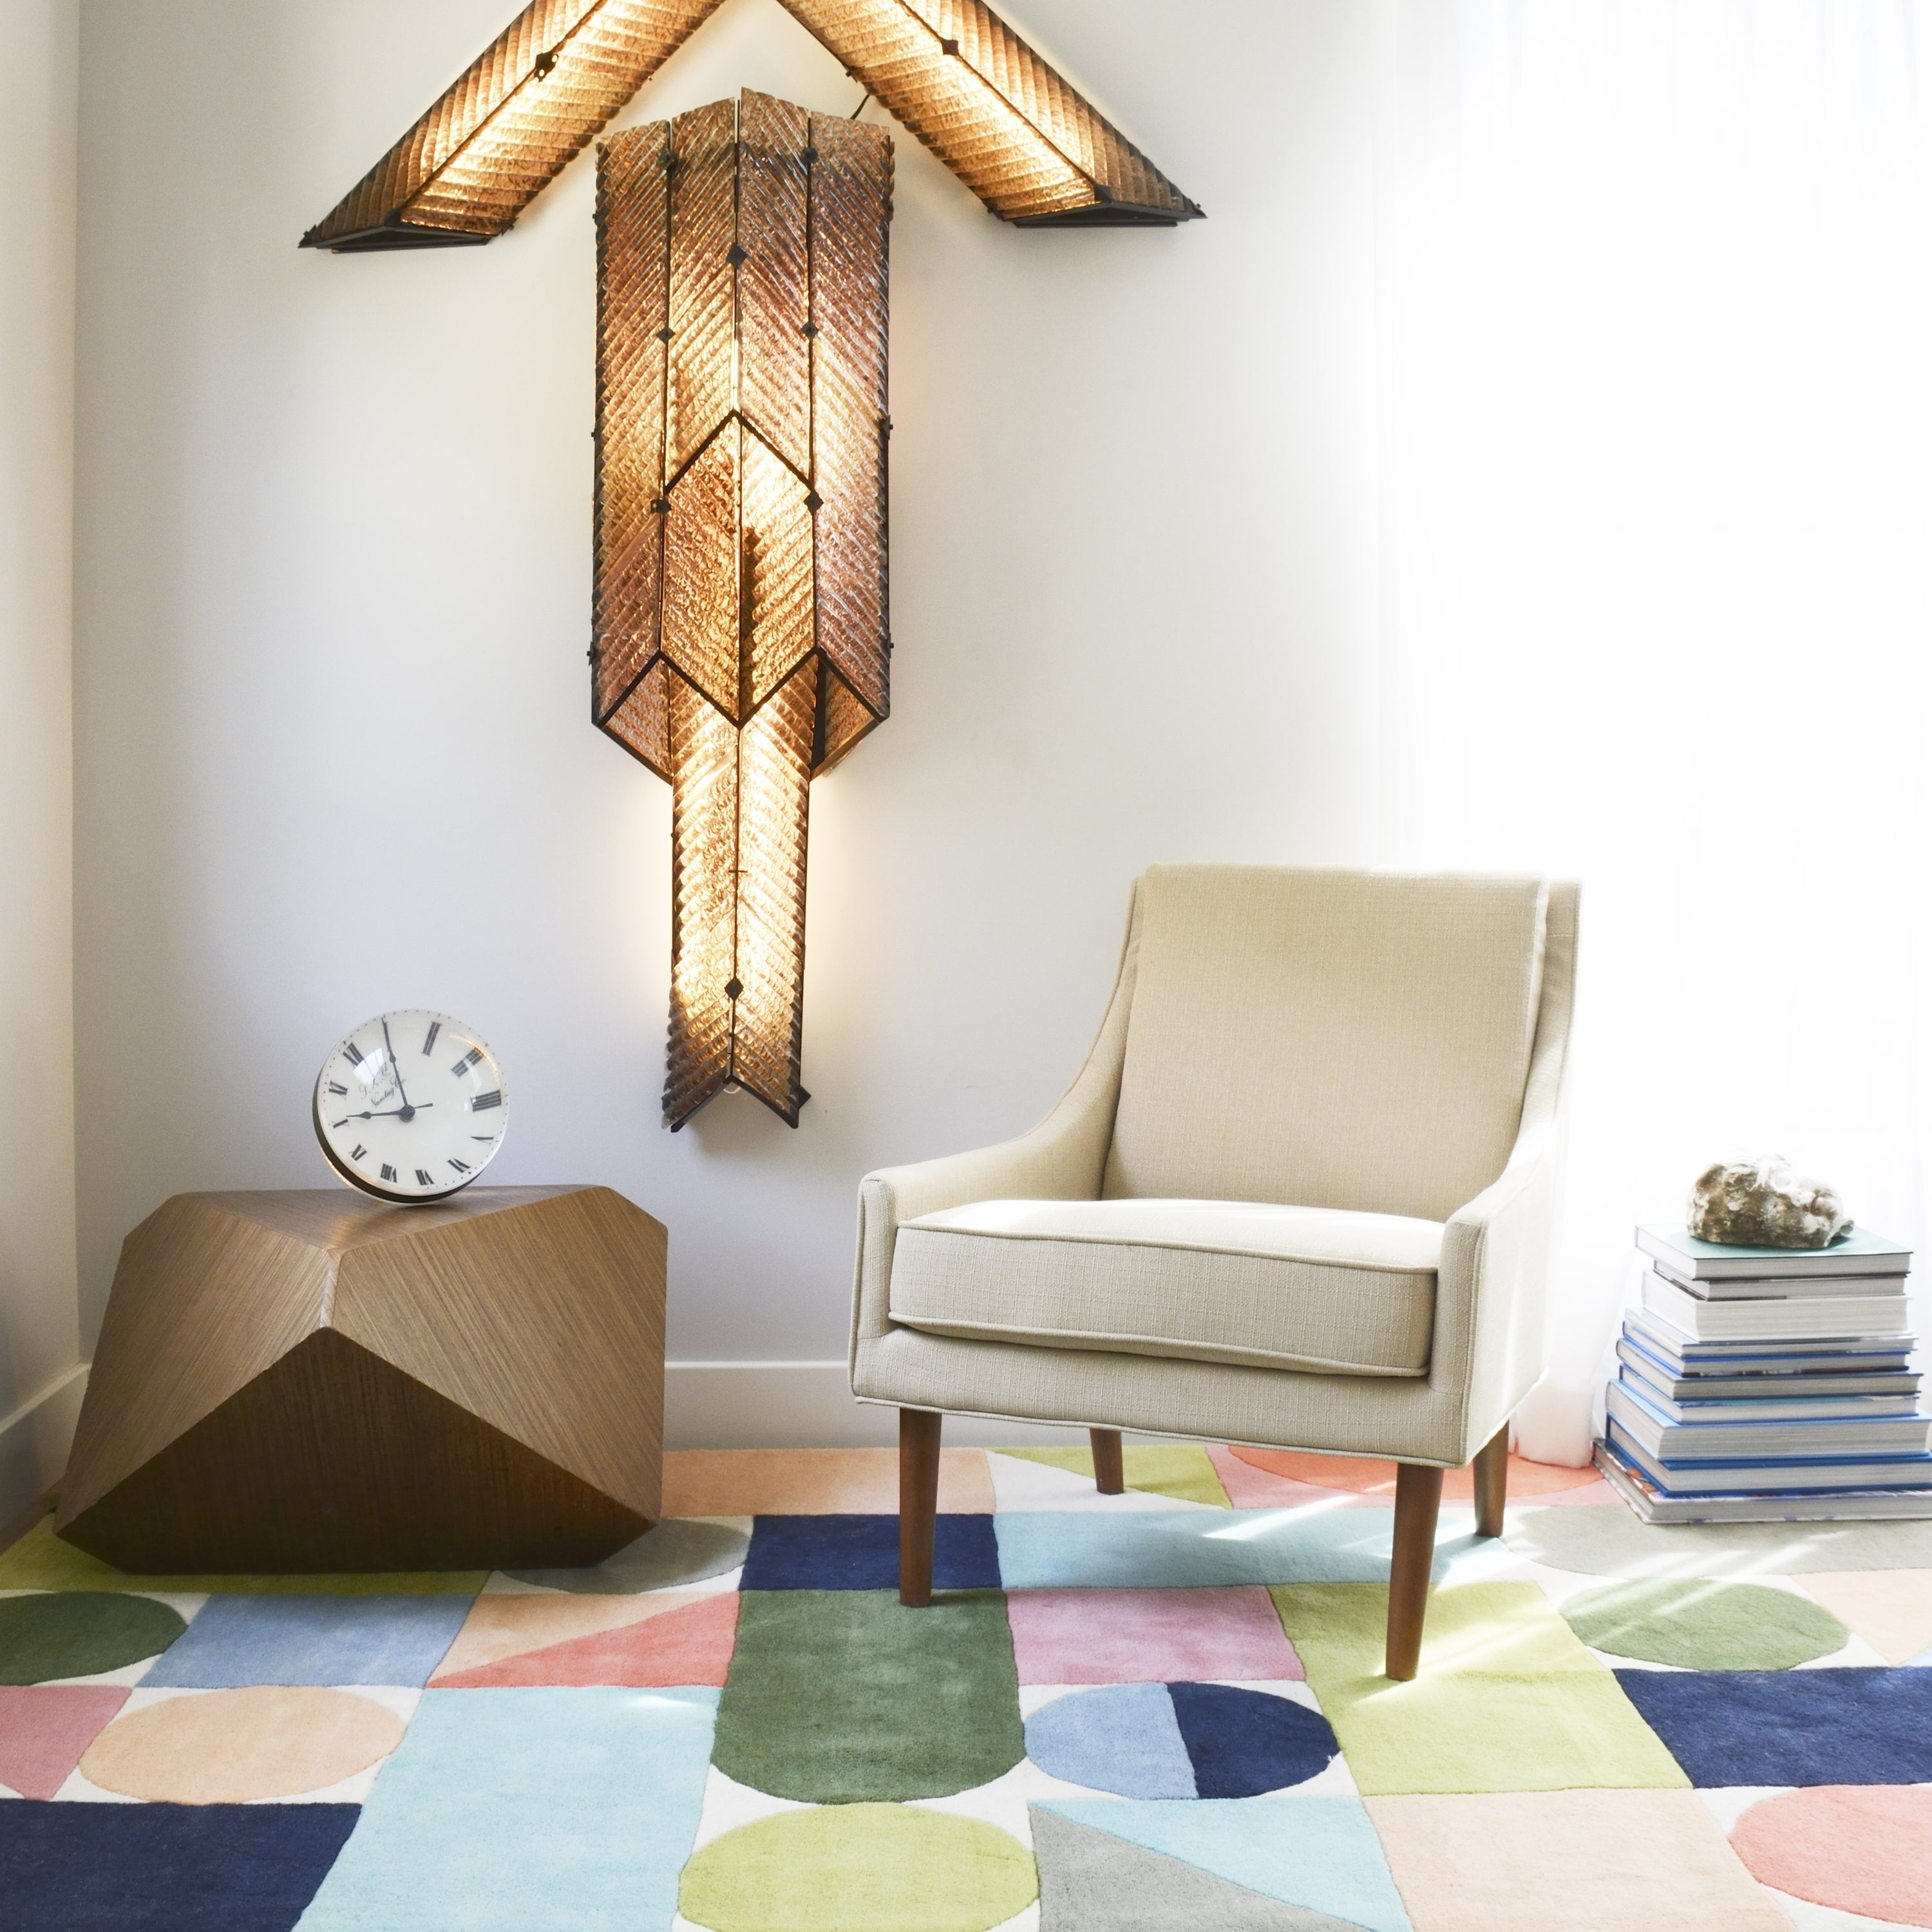 Novogratz By Momeni Delmar Wright Hand Tufted Wool Area Rug On Sale Overstock 15384161 2 3 X 8 Runner Multi